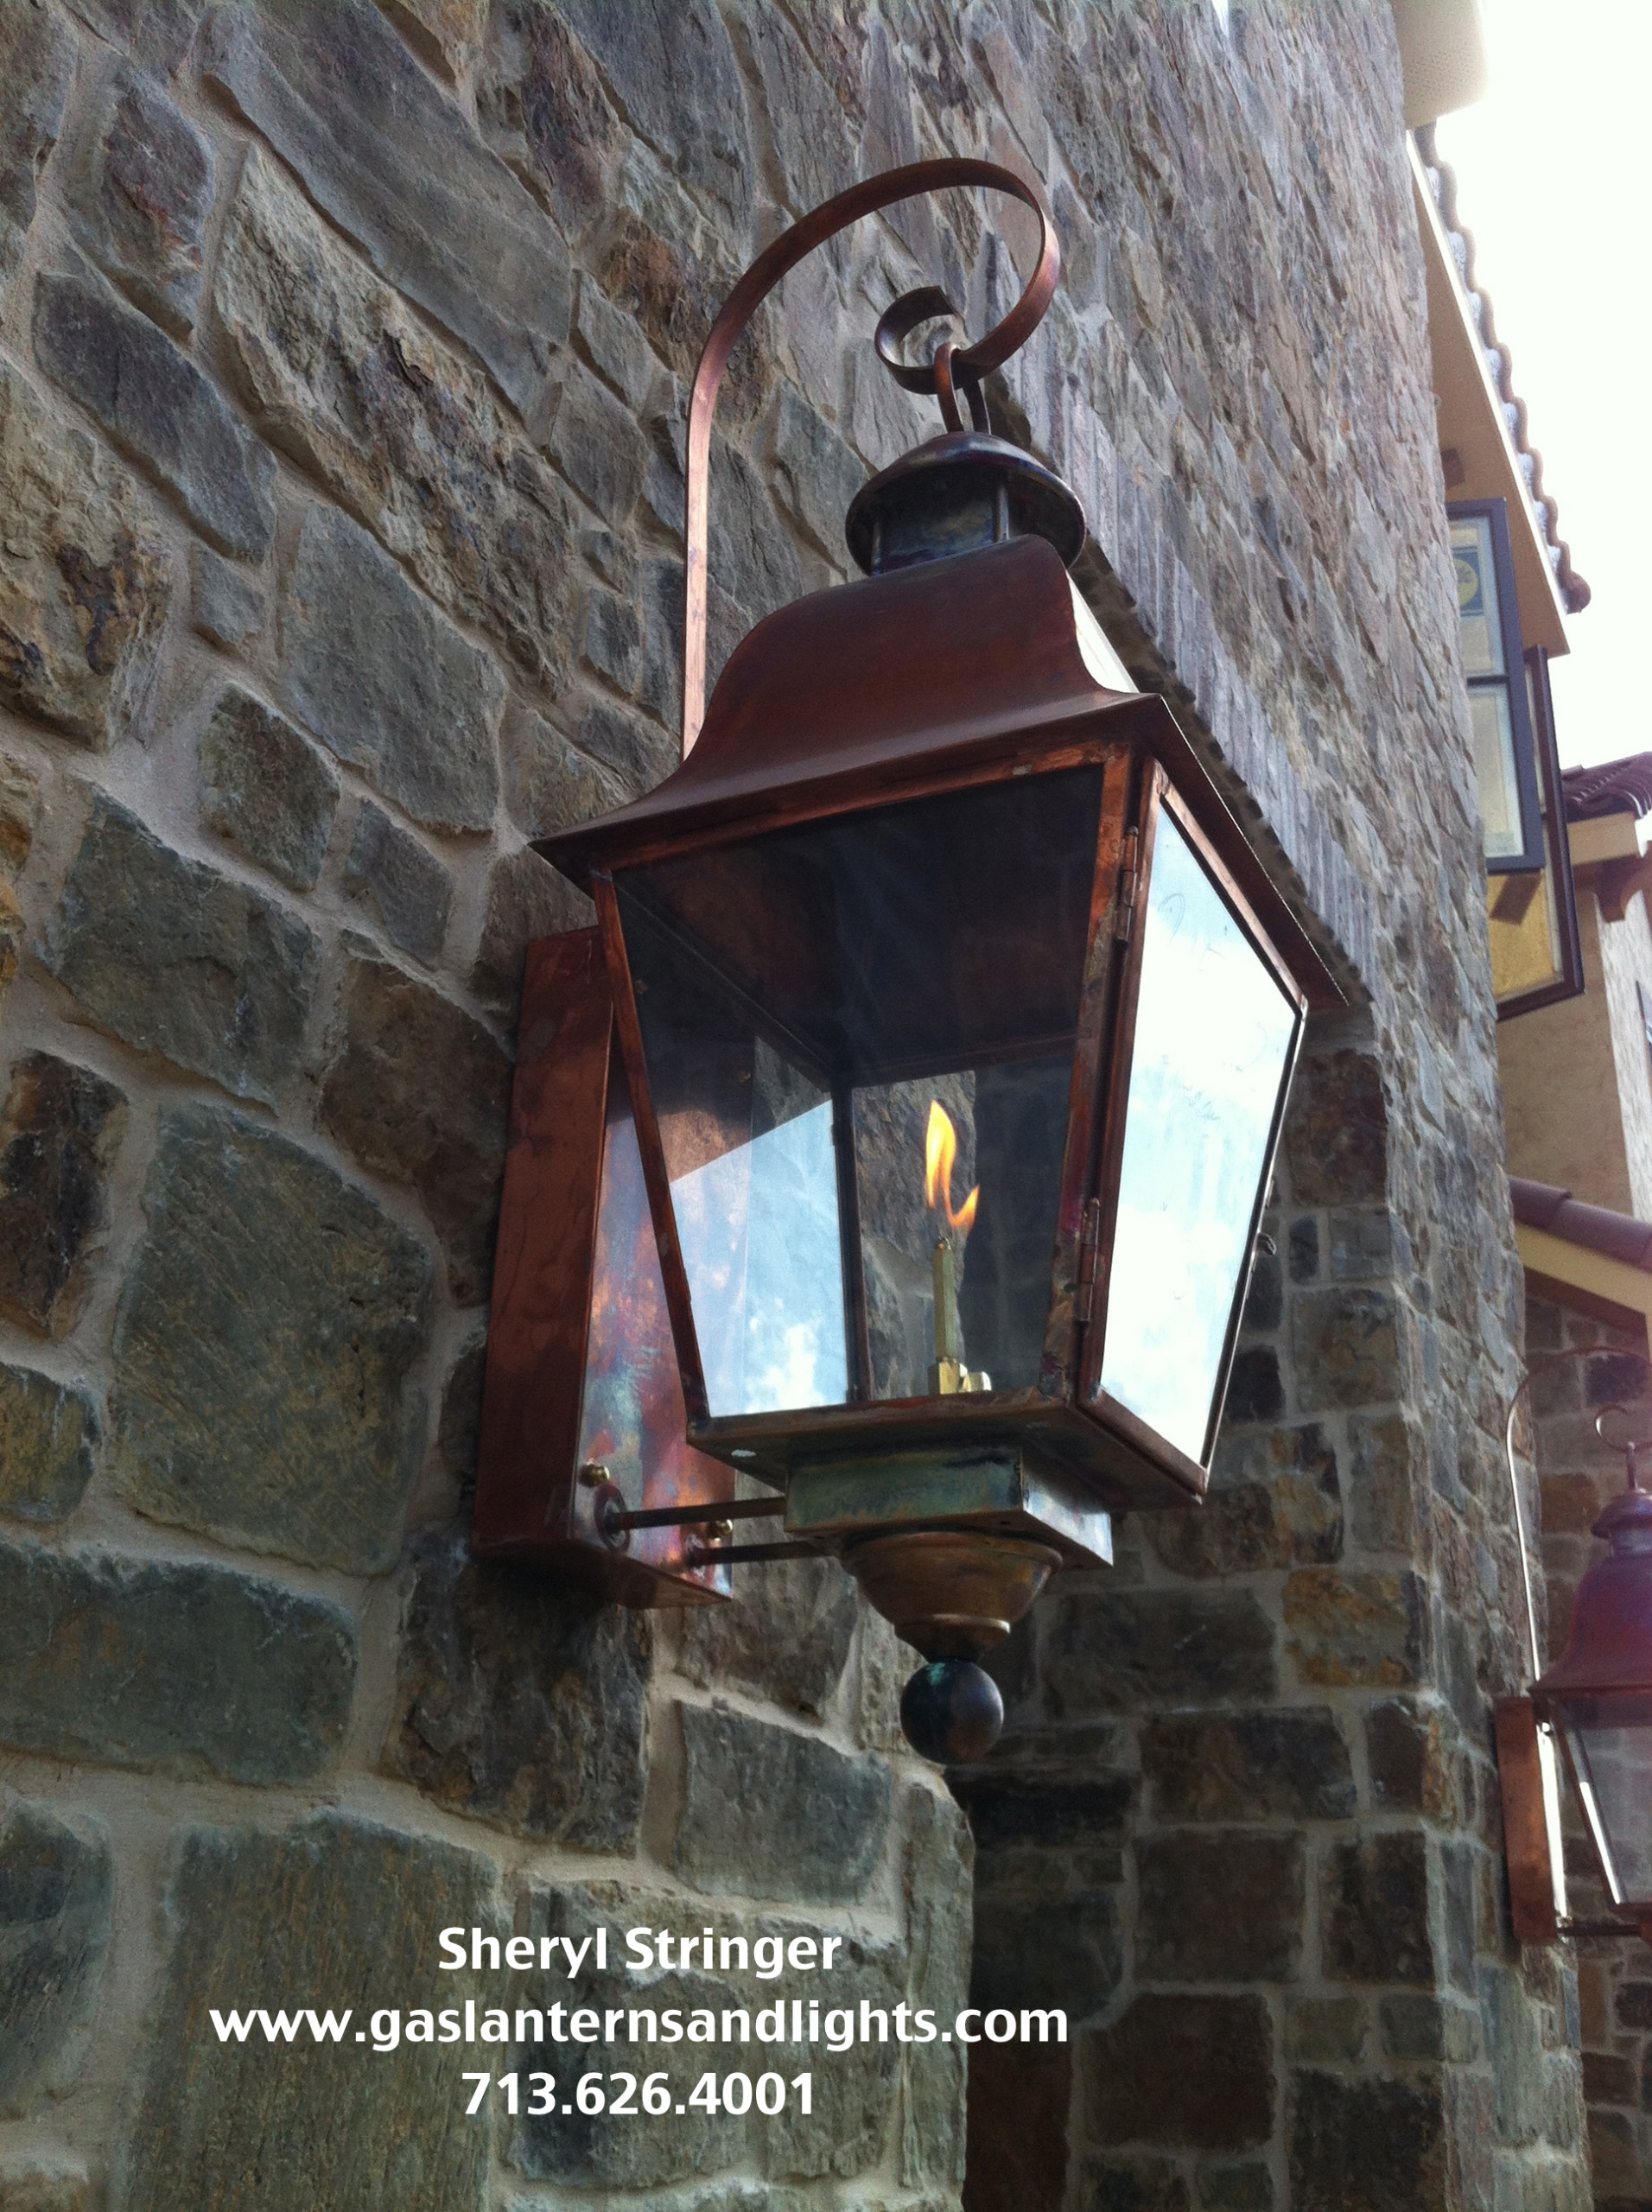 Tuscan Gas Lanterns by Sheryl Stringer